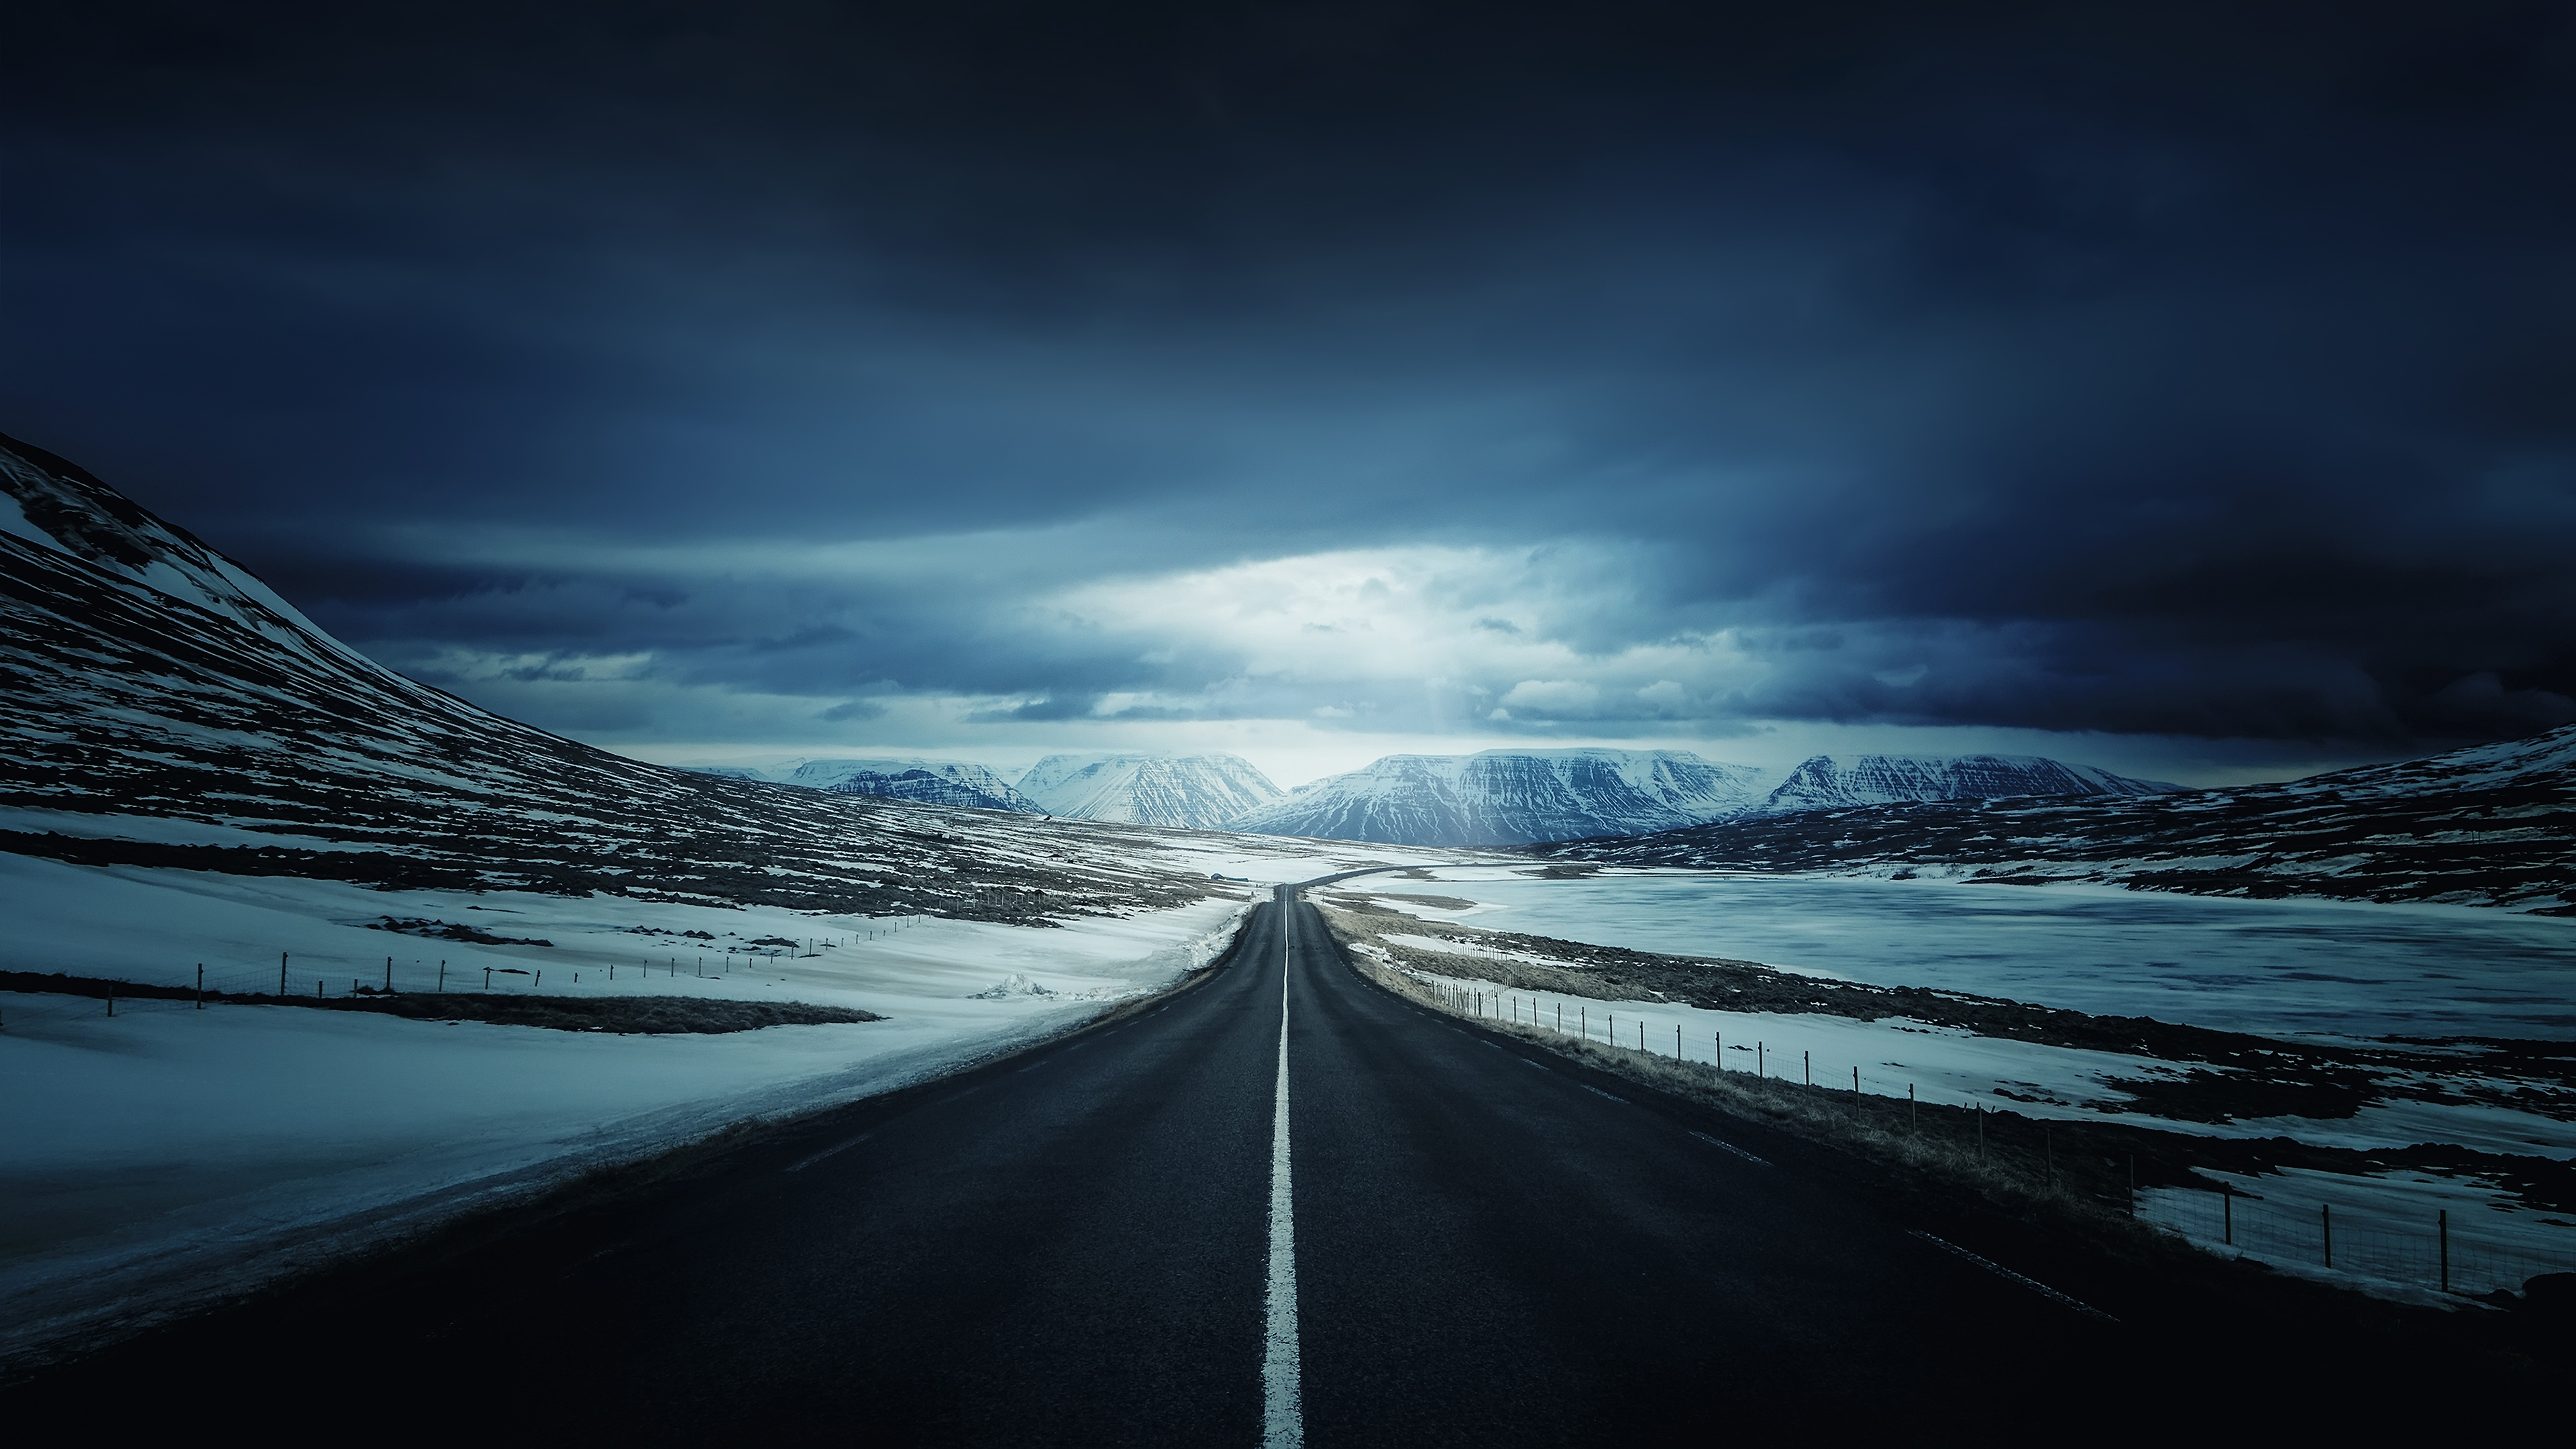 Road 4k Ultra HD Wallpaper